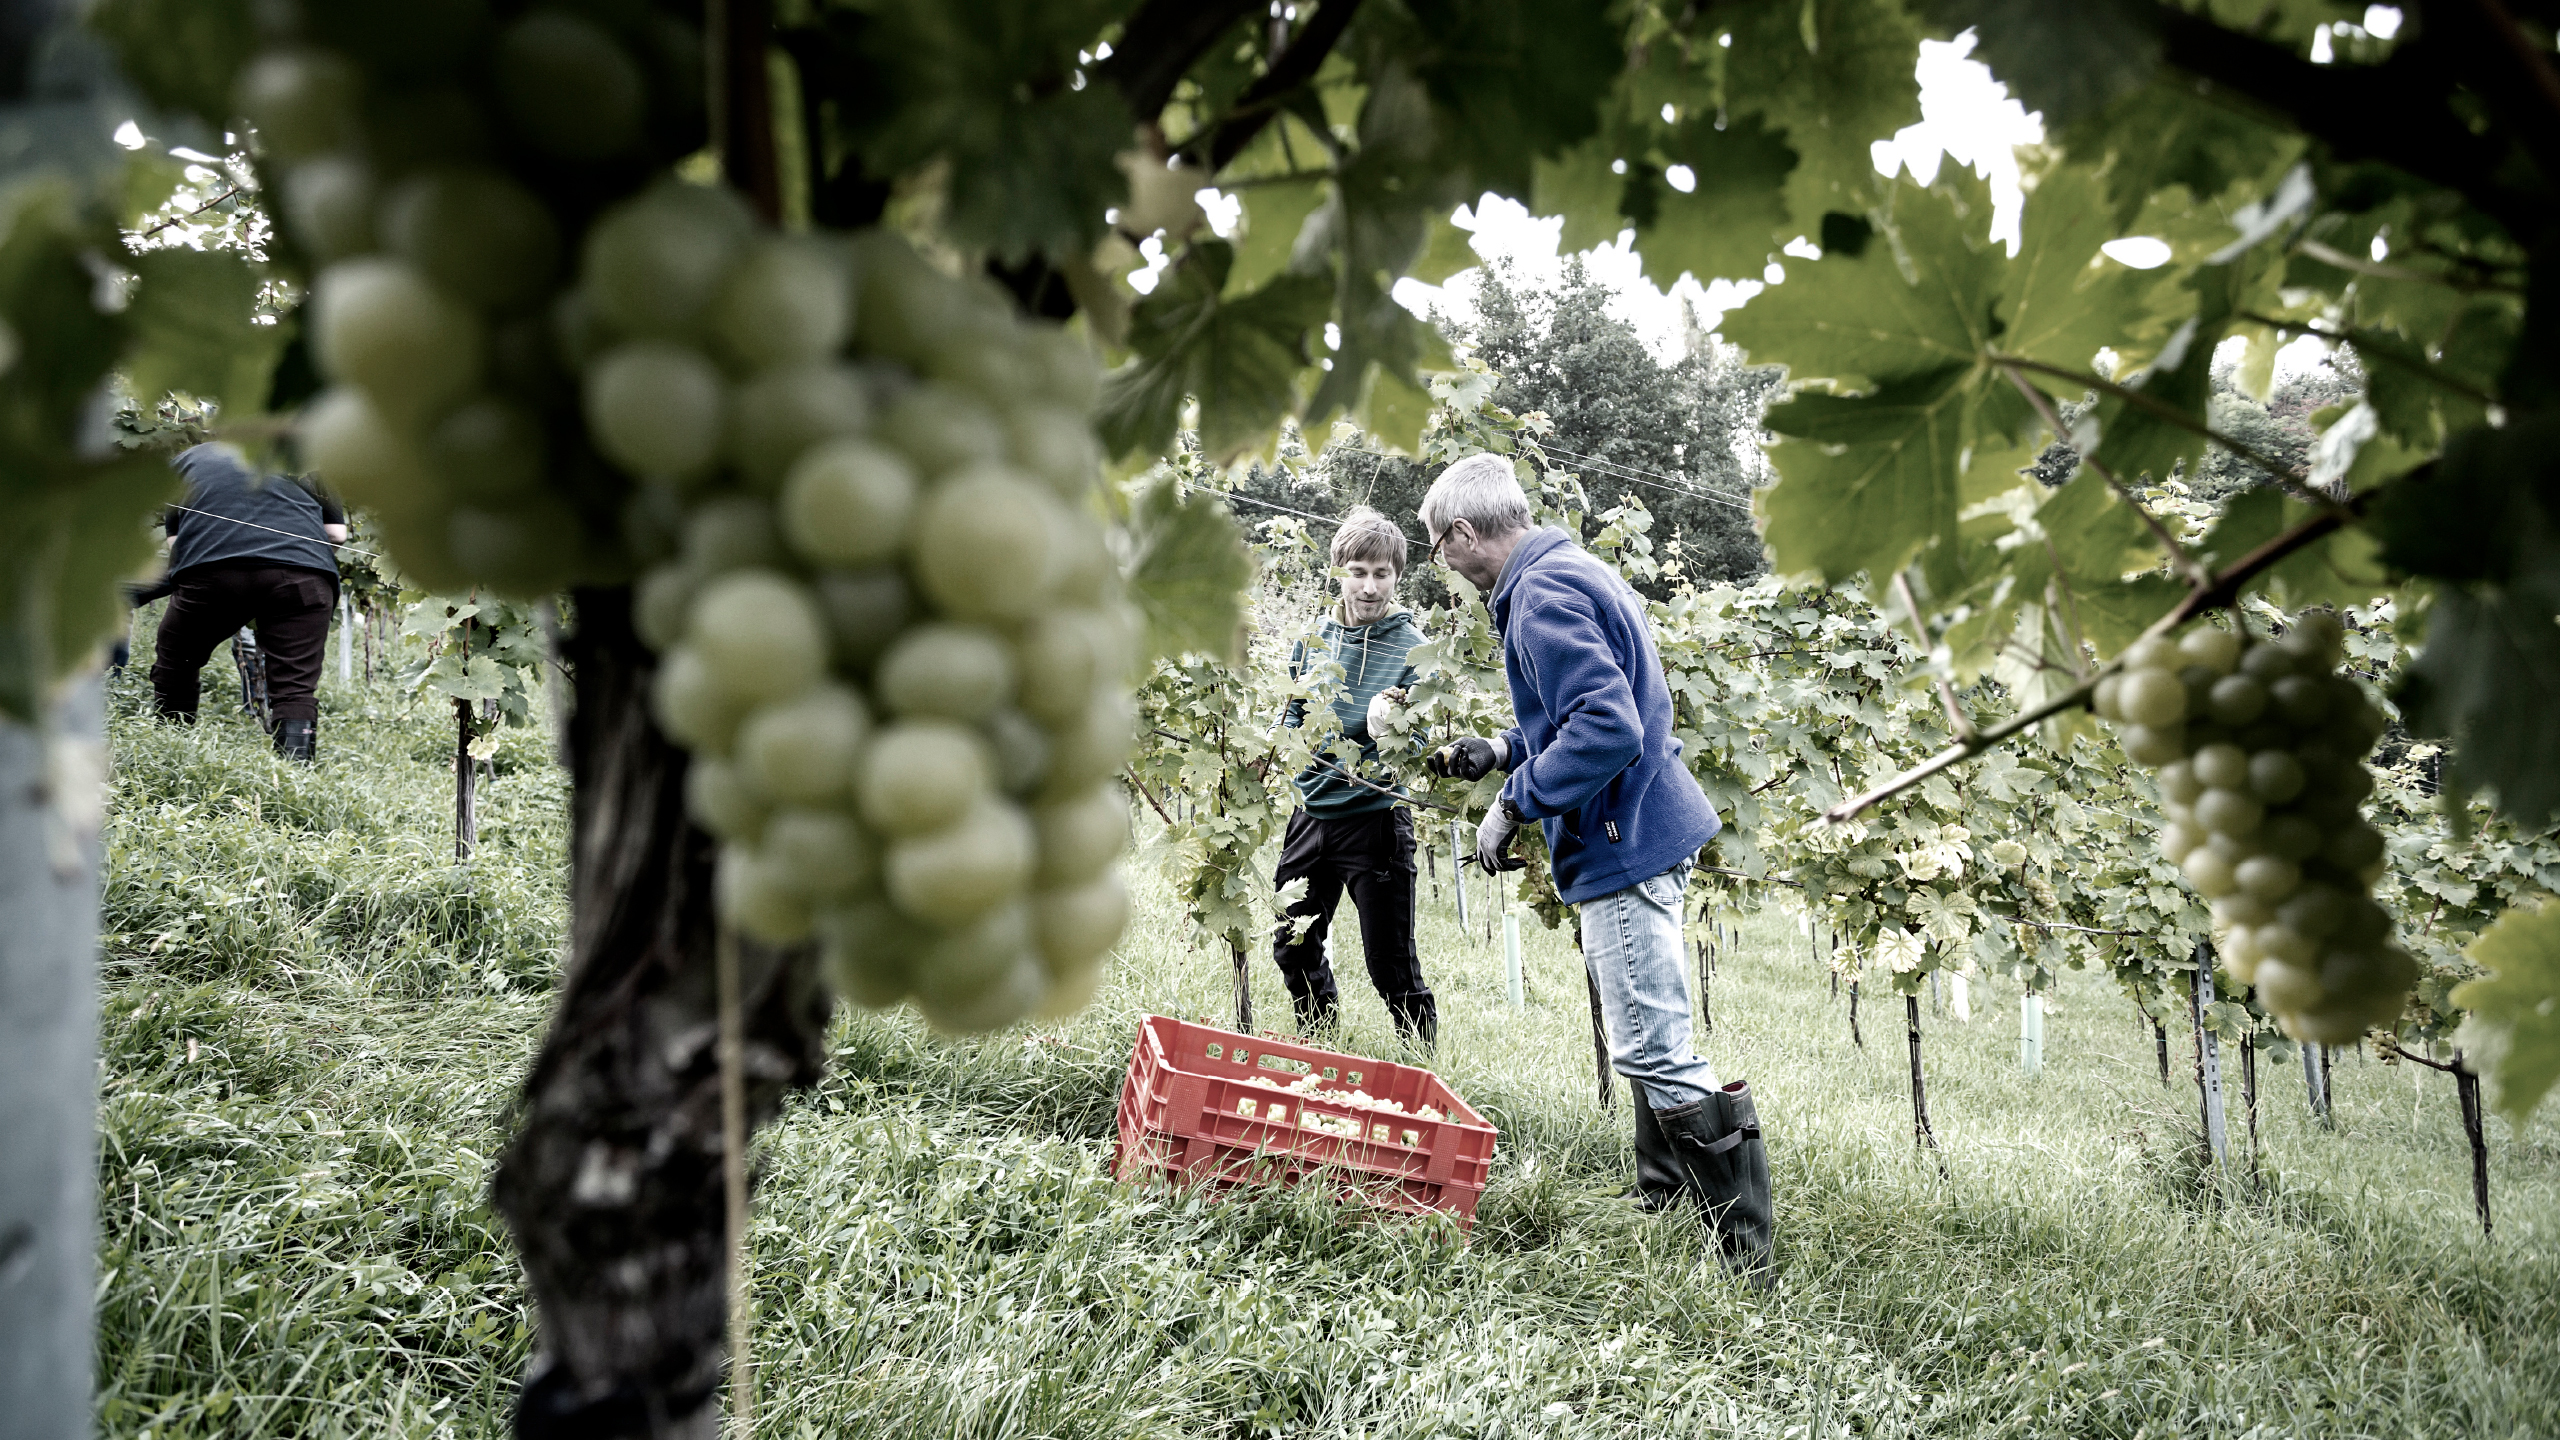 Ref Goedwinemakers Fotografie 4